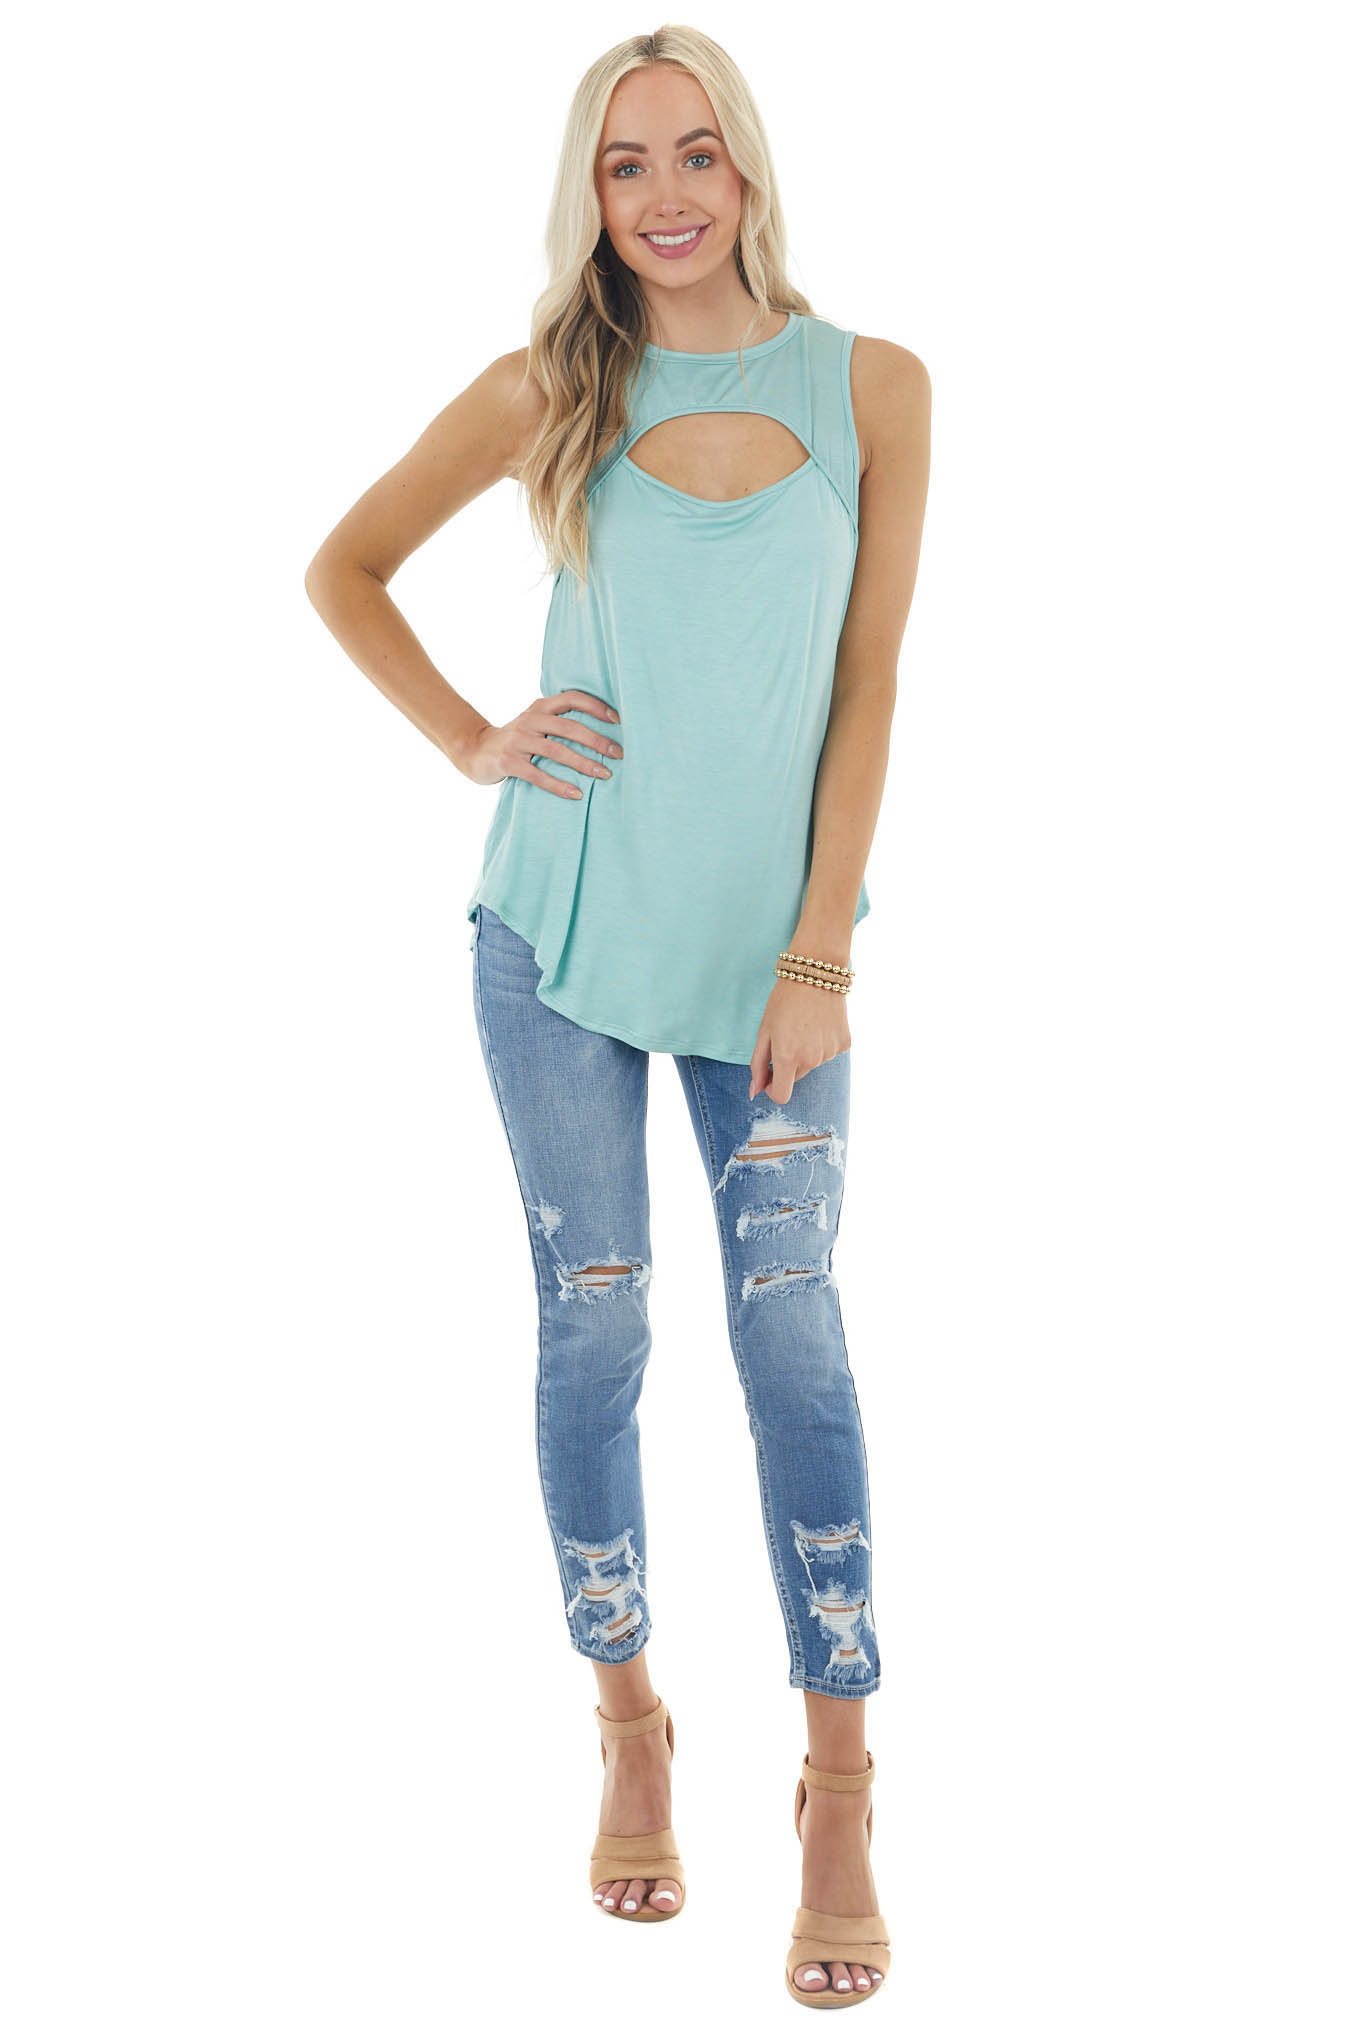 Seafoam Sleeveless Stretchy Knit Top with Cut Out Detail